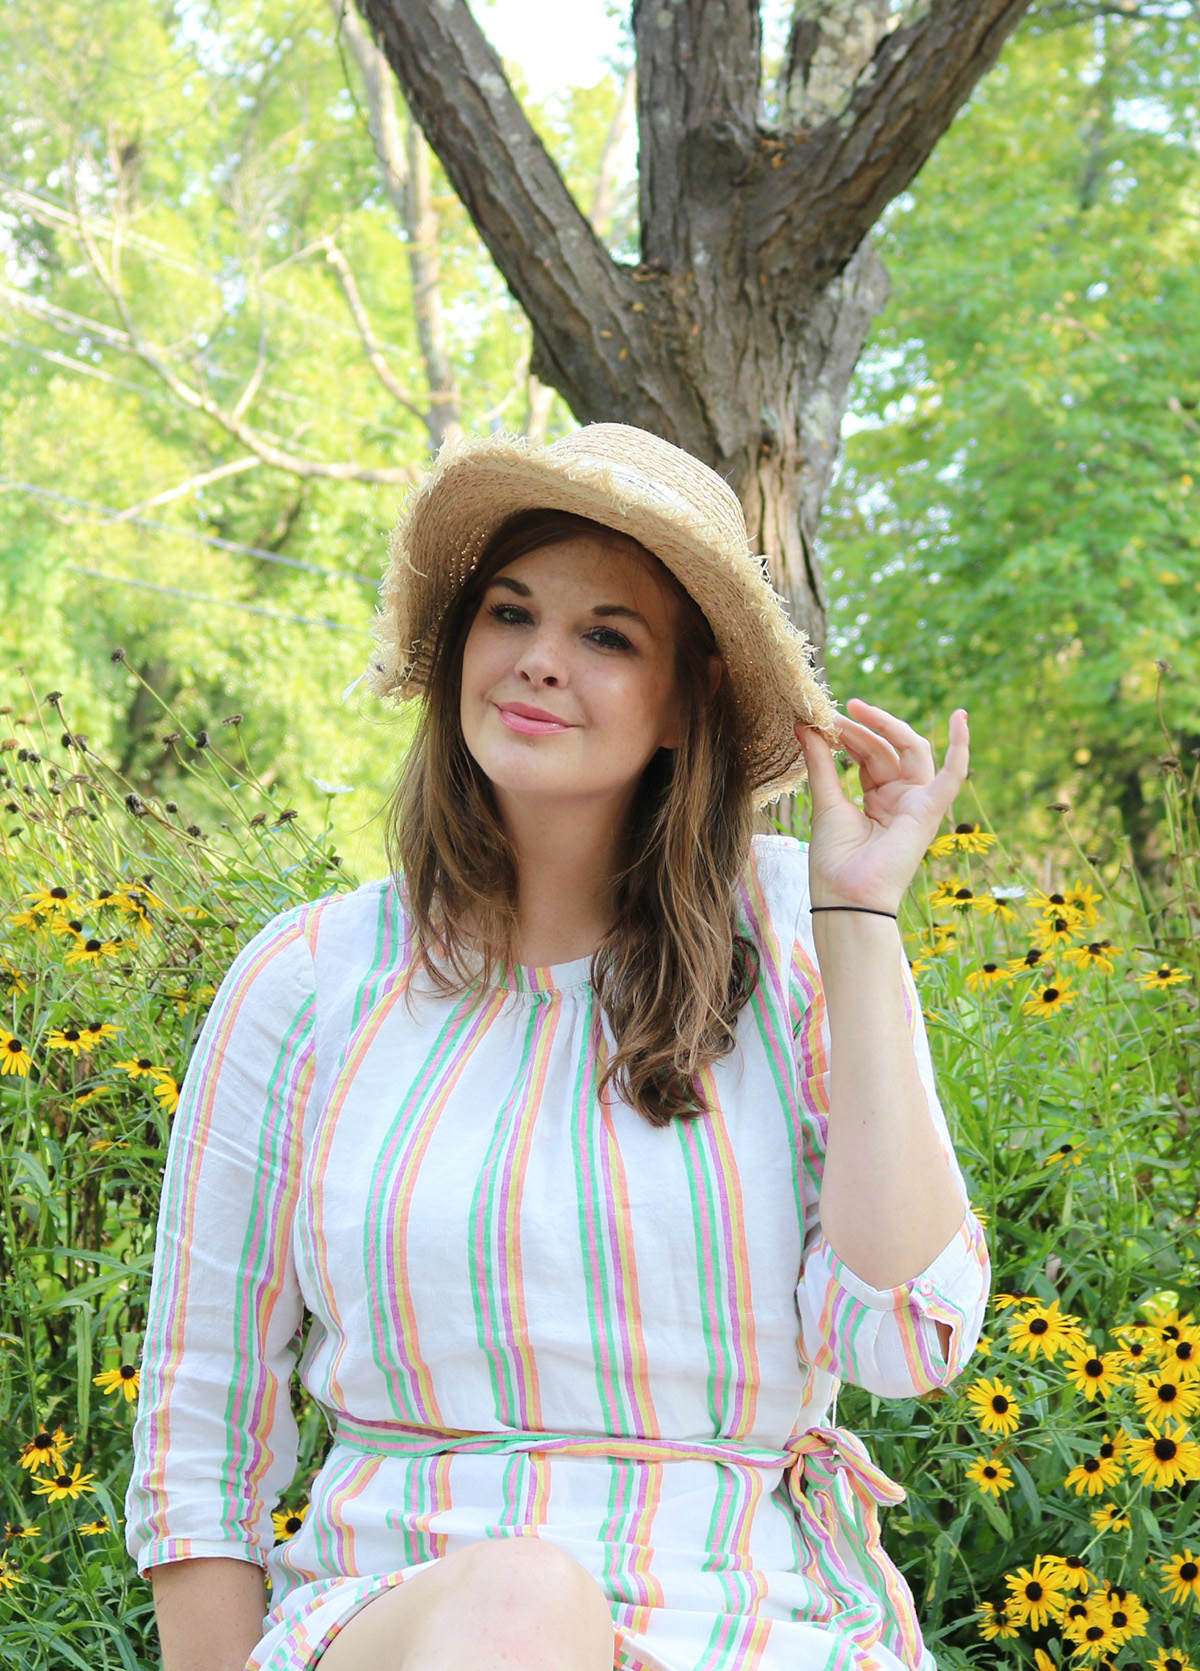 2018 Labor Day Sales I Nordstrom Summer Sundress with Straw Hat from SHEIN #Summer #Style #Summerstyle #LaborDay